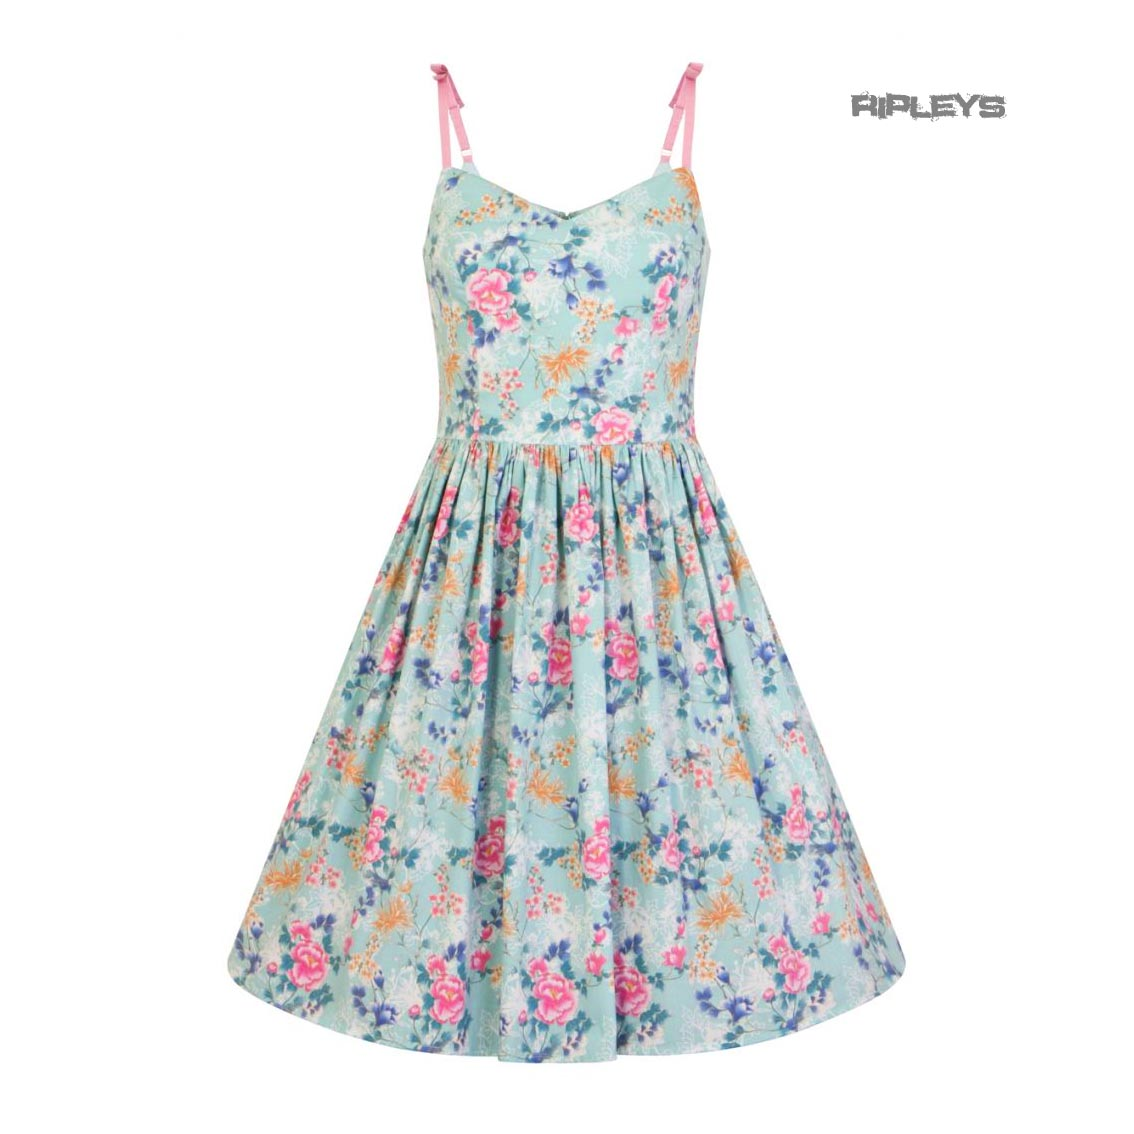 Hell-Bunny-50s-Mid-Length-Dress-Vintage-Blue-Pink-SAKURA-Flowers-Roses-All-Sizes thumbnail 32